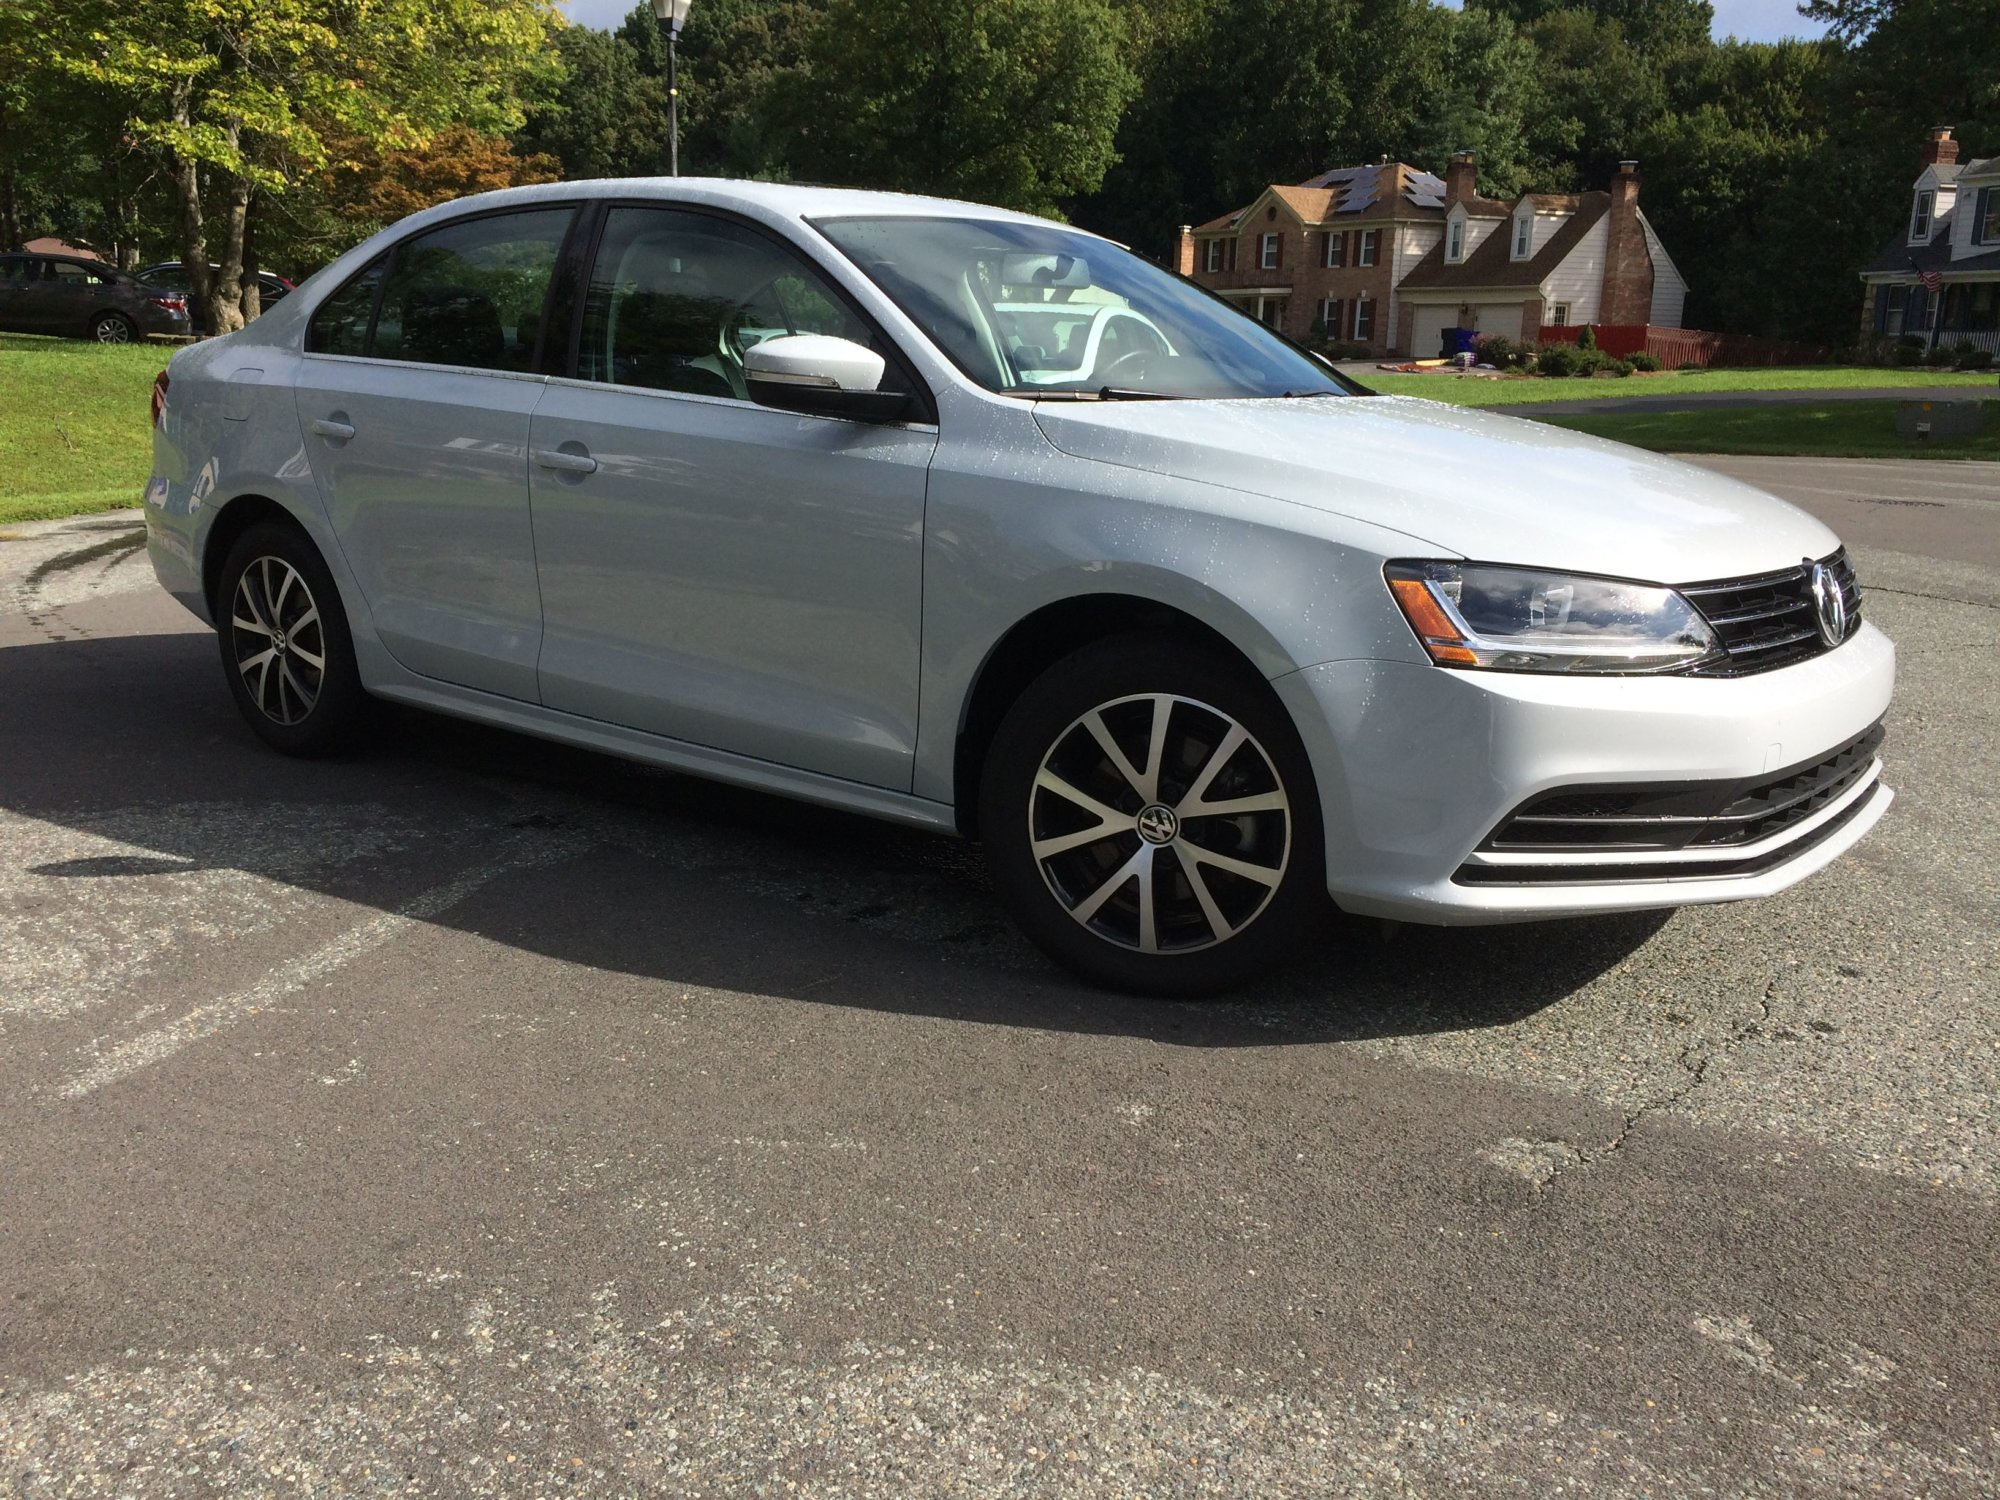 Volkswagen Jetta A Spacious Affordable Compact Sedan Wtop